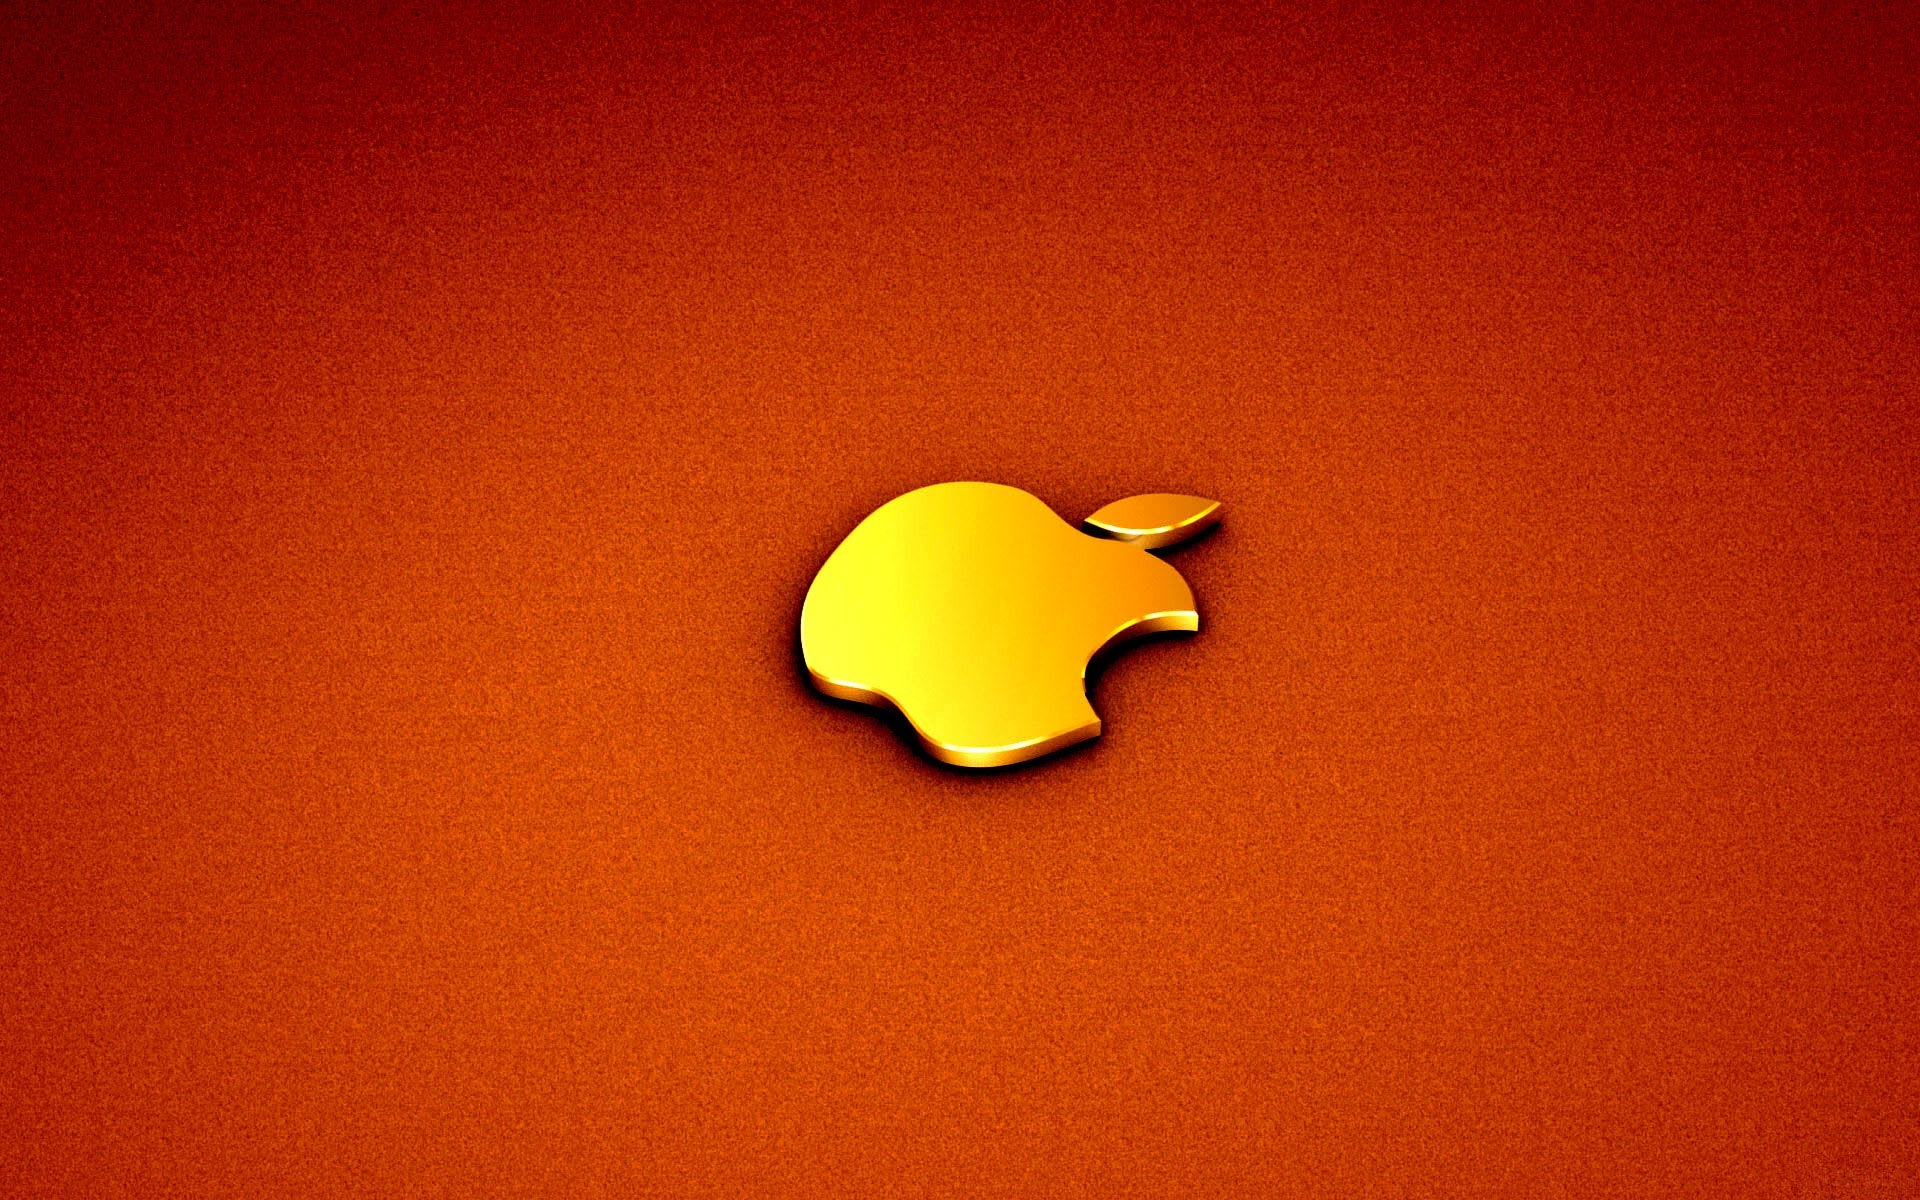 Apple MacBook Pro images Wallpaper High Quality WallpapersWallpaper 1920x1200